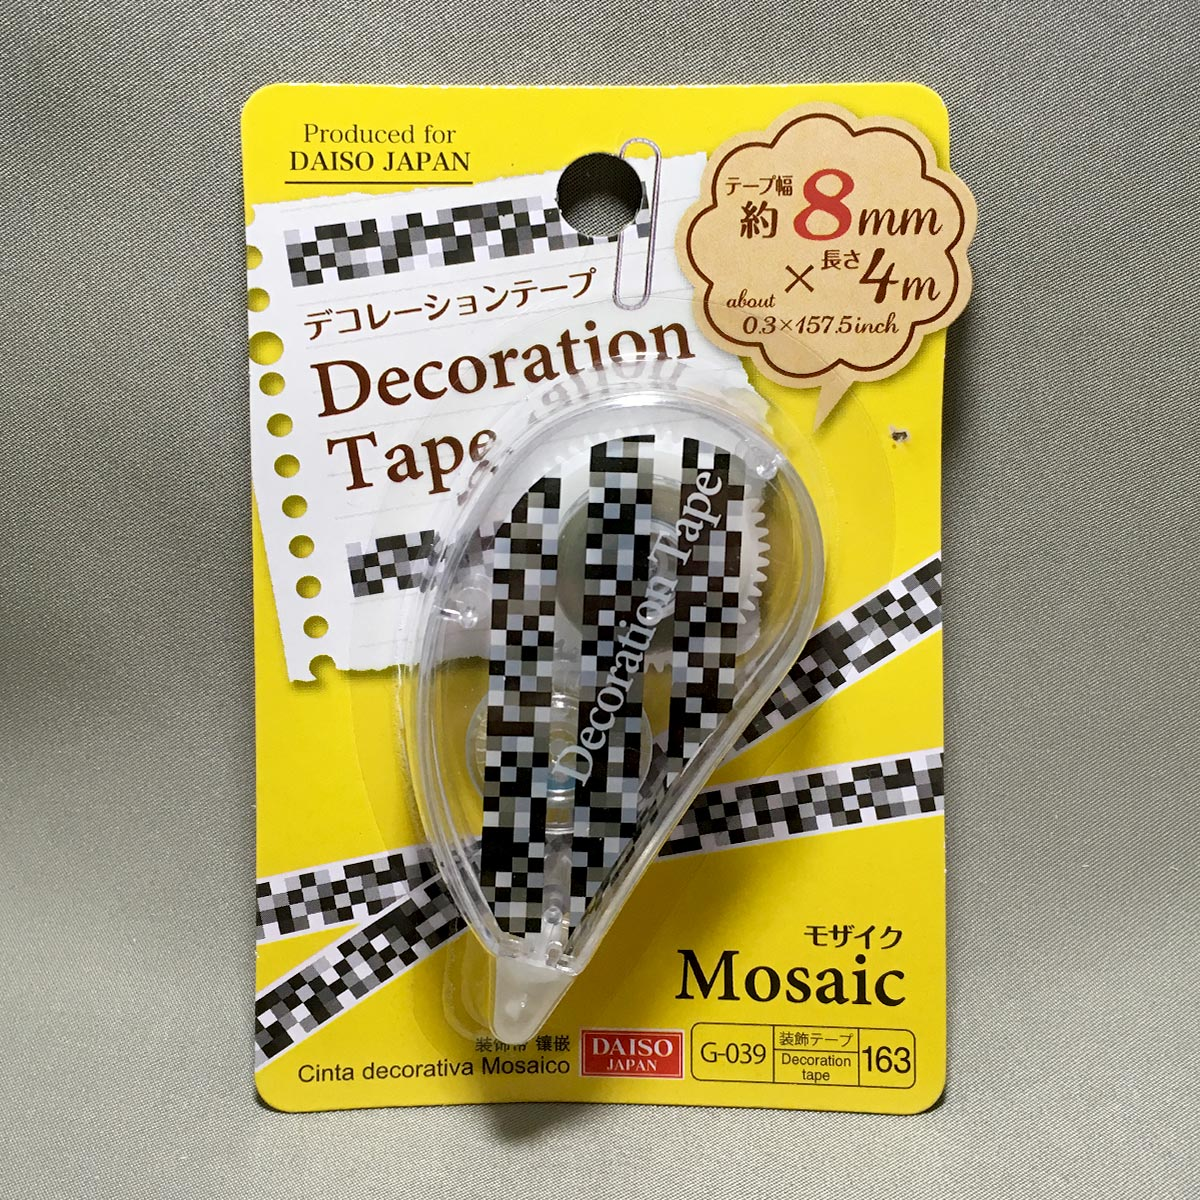 Mosaic Decoration Tape - Front packaging